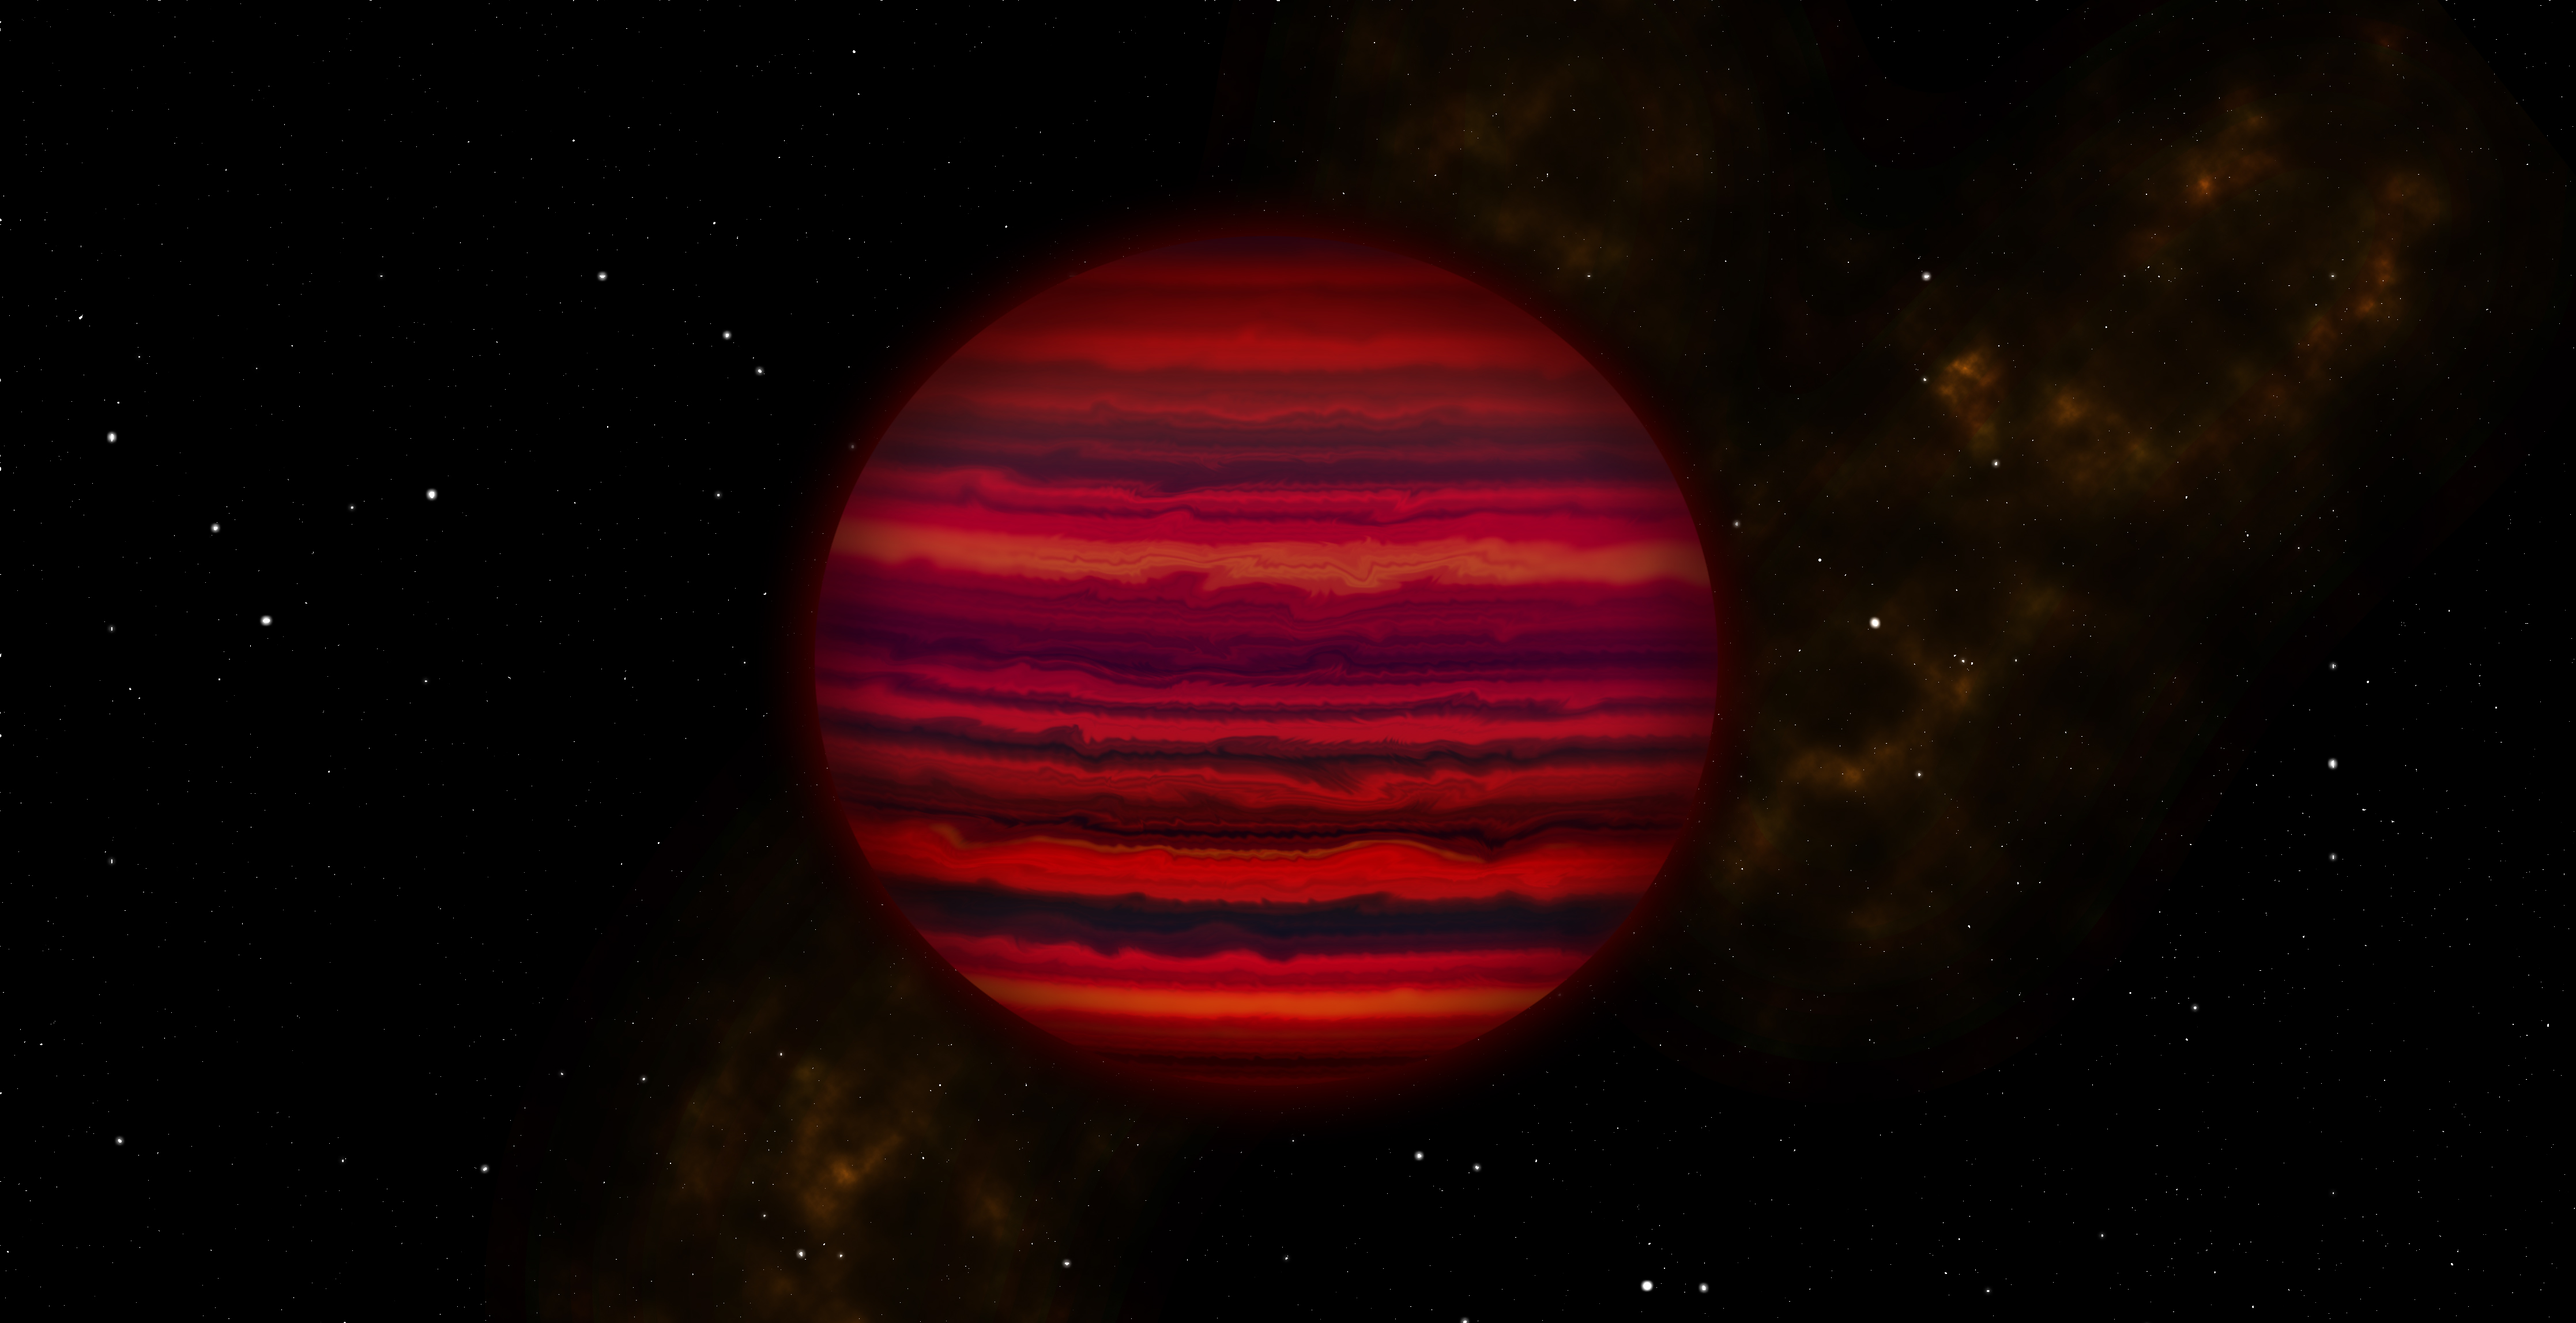 The Brown Dwarf WISE 0855